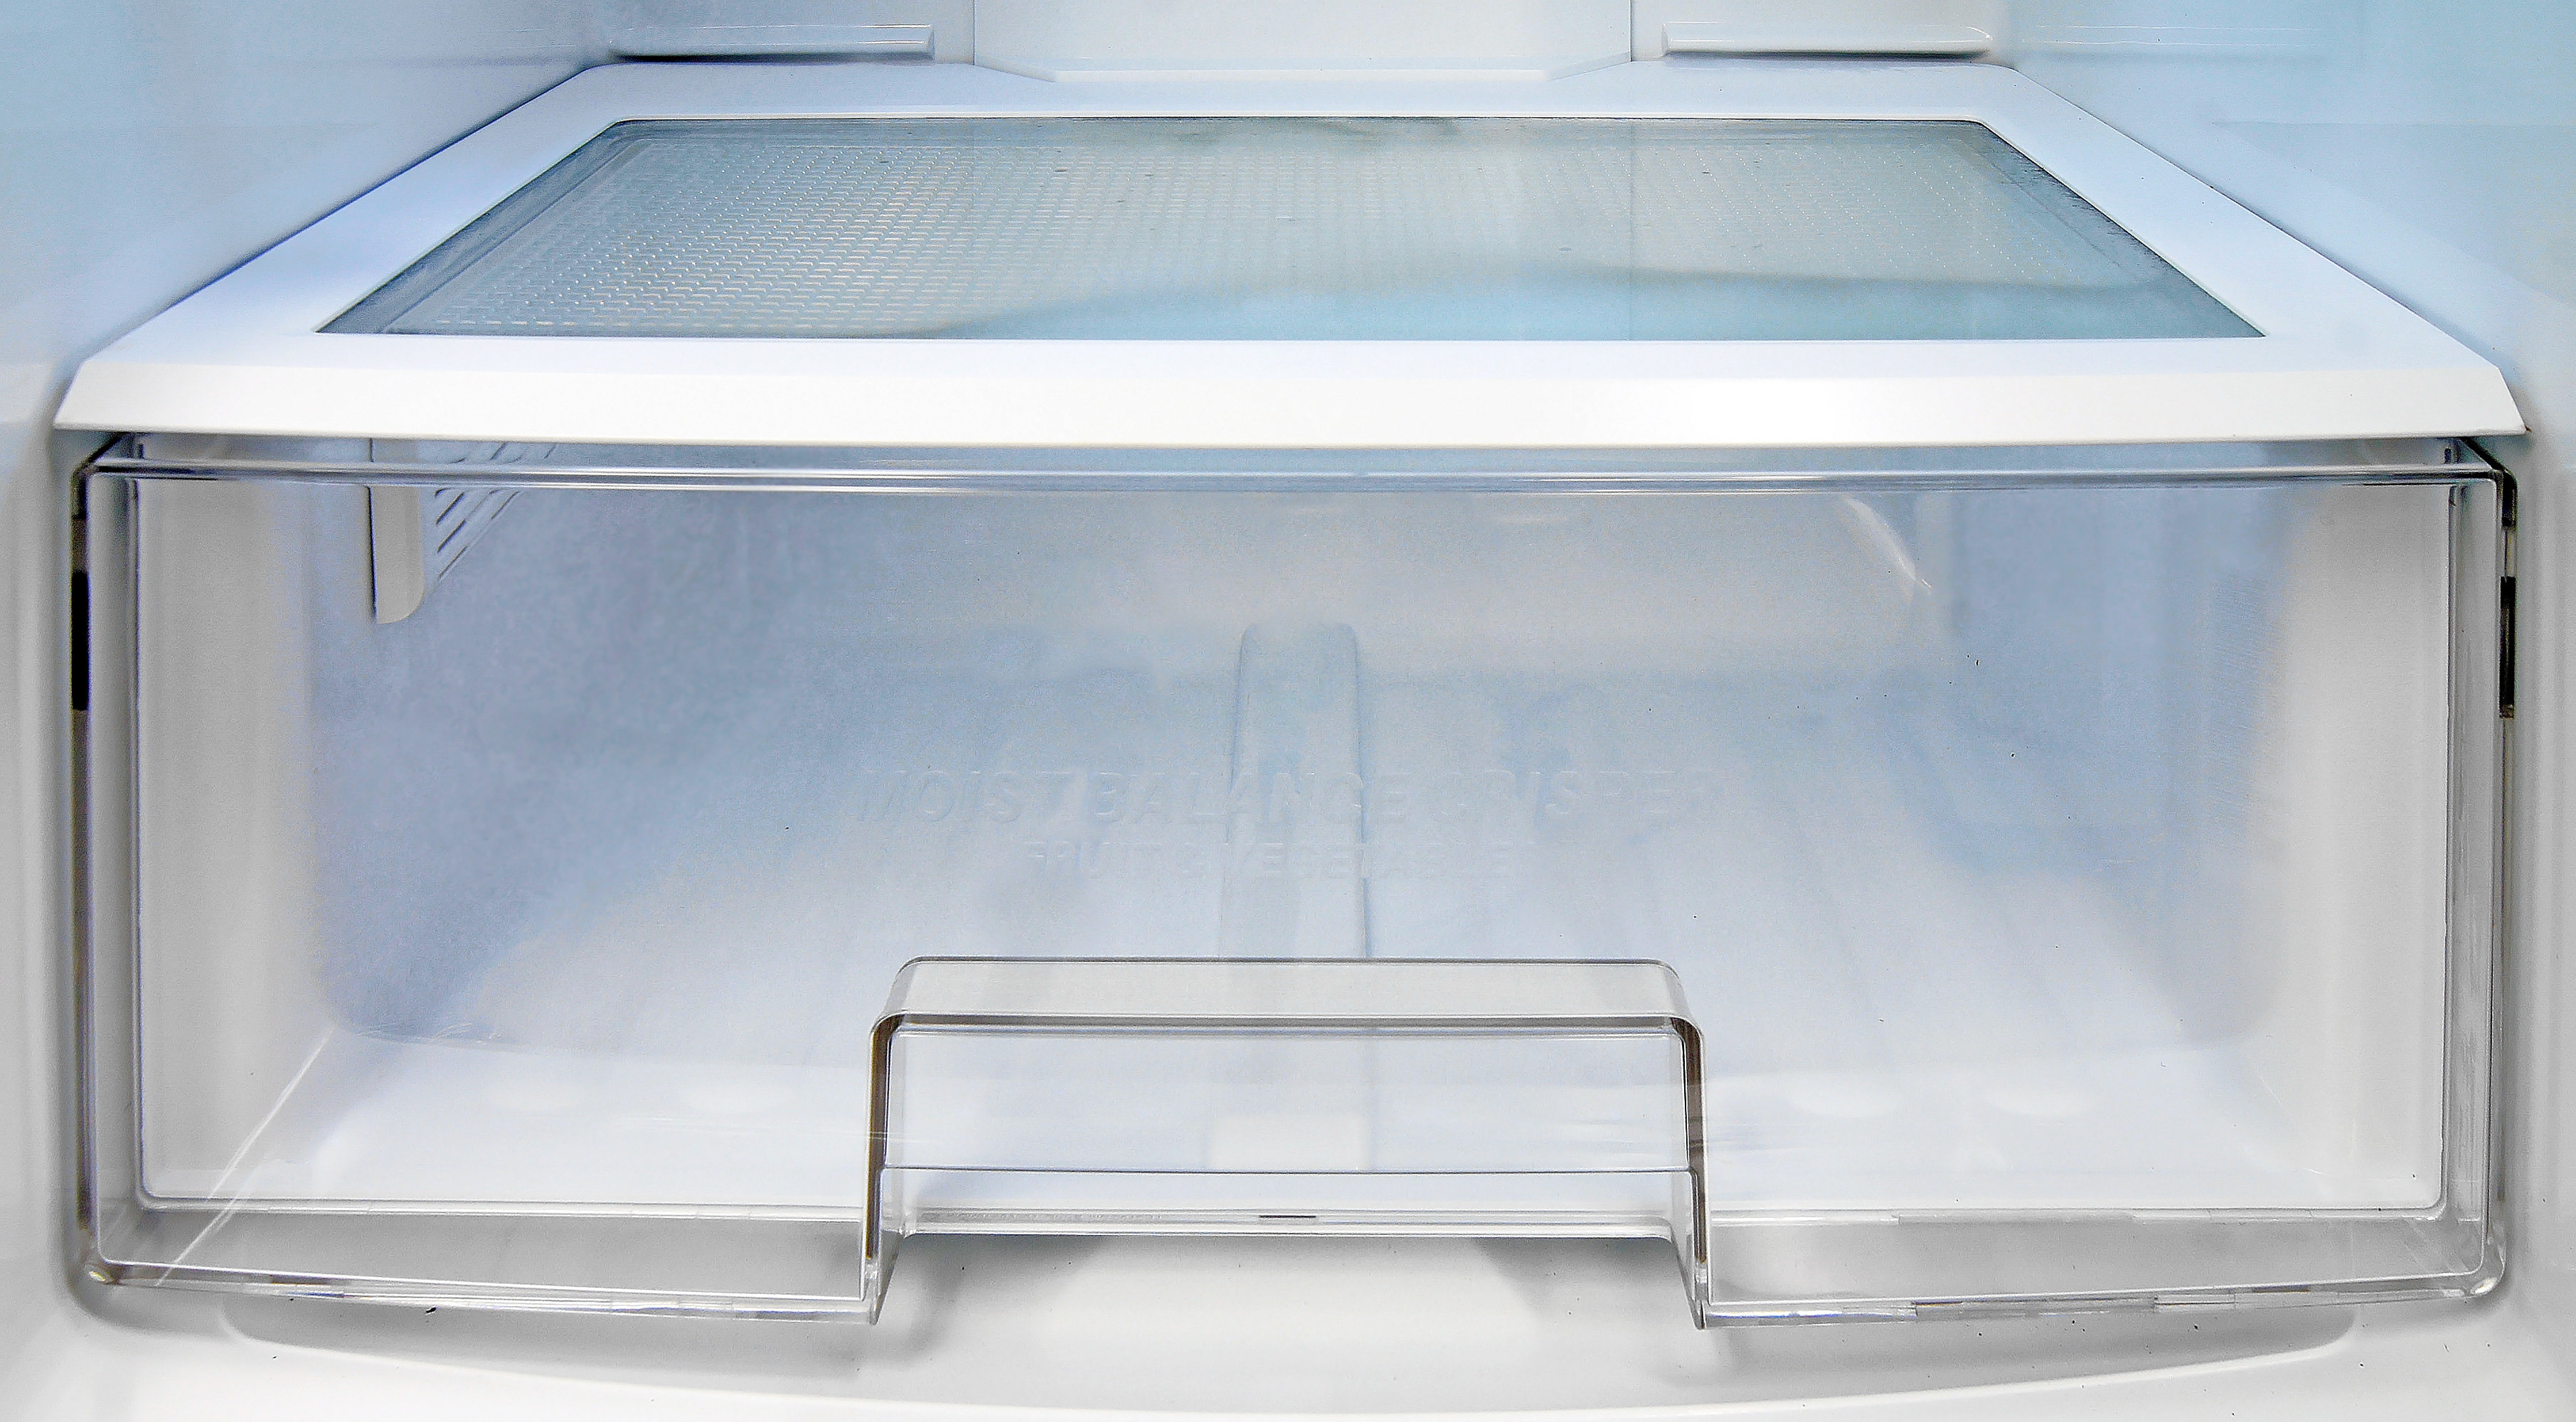 The LG LBN10551PV's crisper is just a plain sliding drawer with no humidity control.